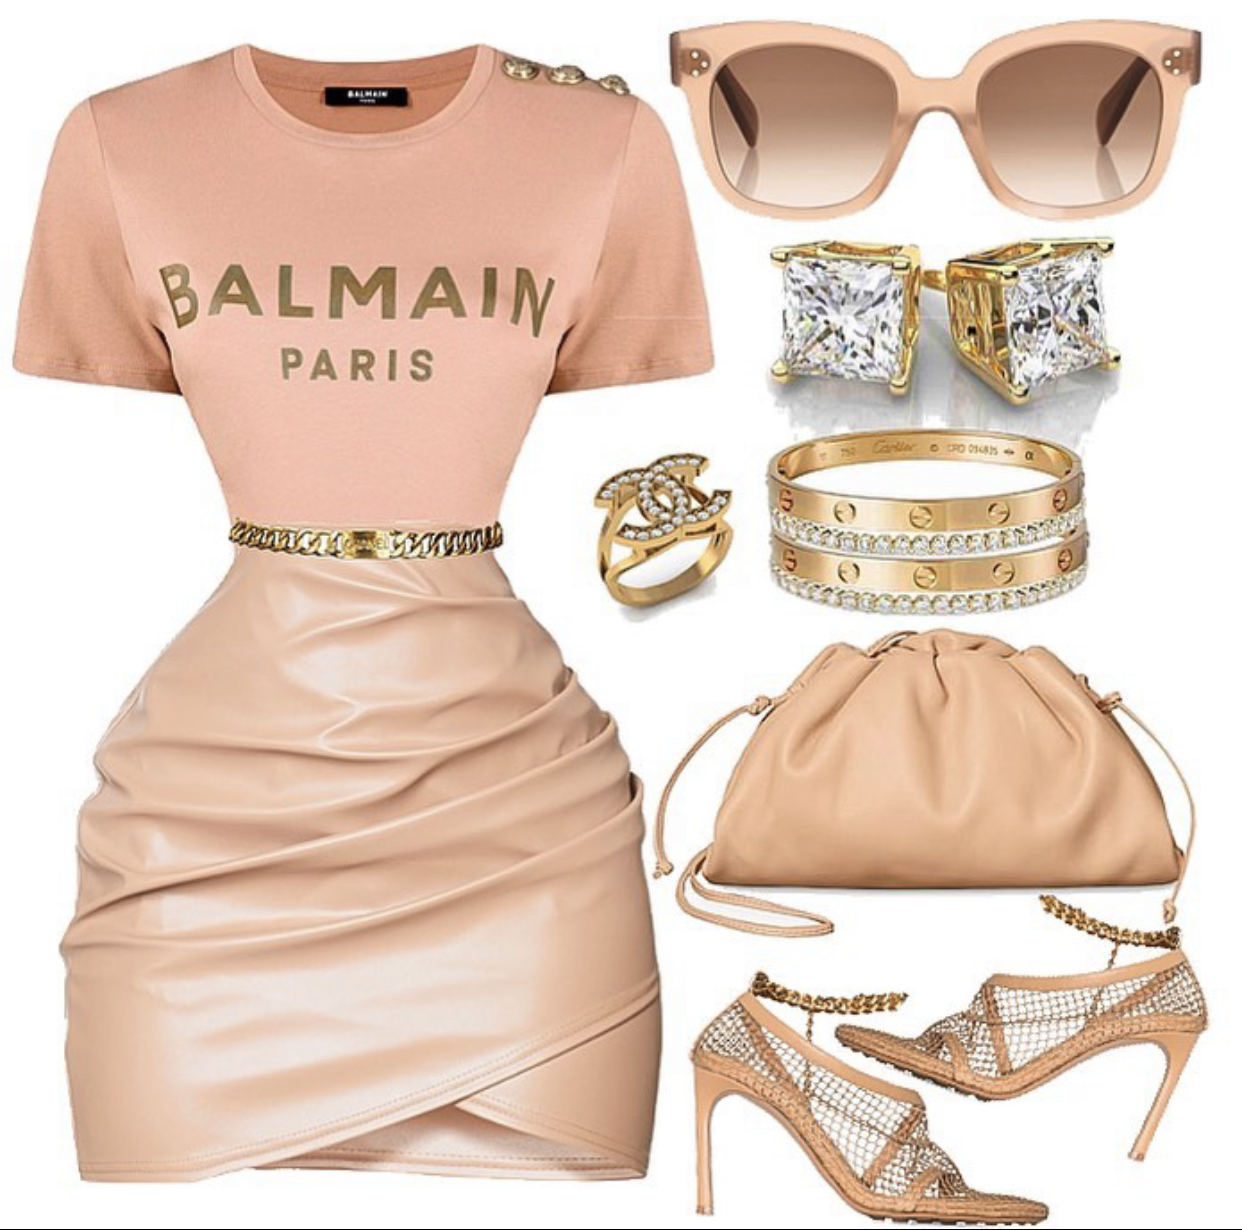 Nude Look Style Inspiration: How To Rock Nude Colors By @styledbyjovon Featuring Balmain Logo T-shirt, Bottega Veneta Mini Pouch Bag And Mesh Sandals, Celine 'tilda' Sunglasses, Cartier Love Bracelets, And Chanel Accessories! – Fashion